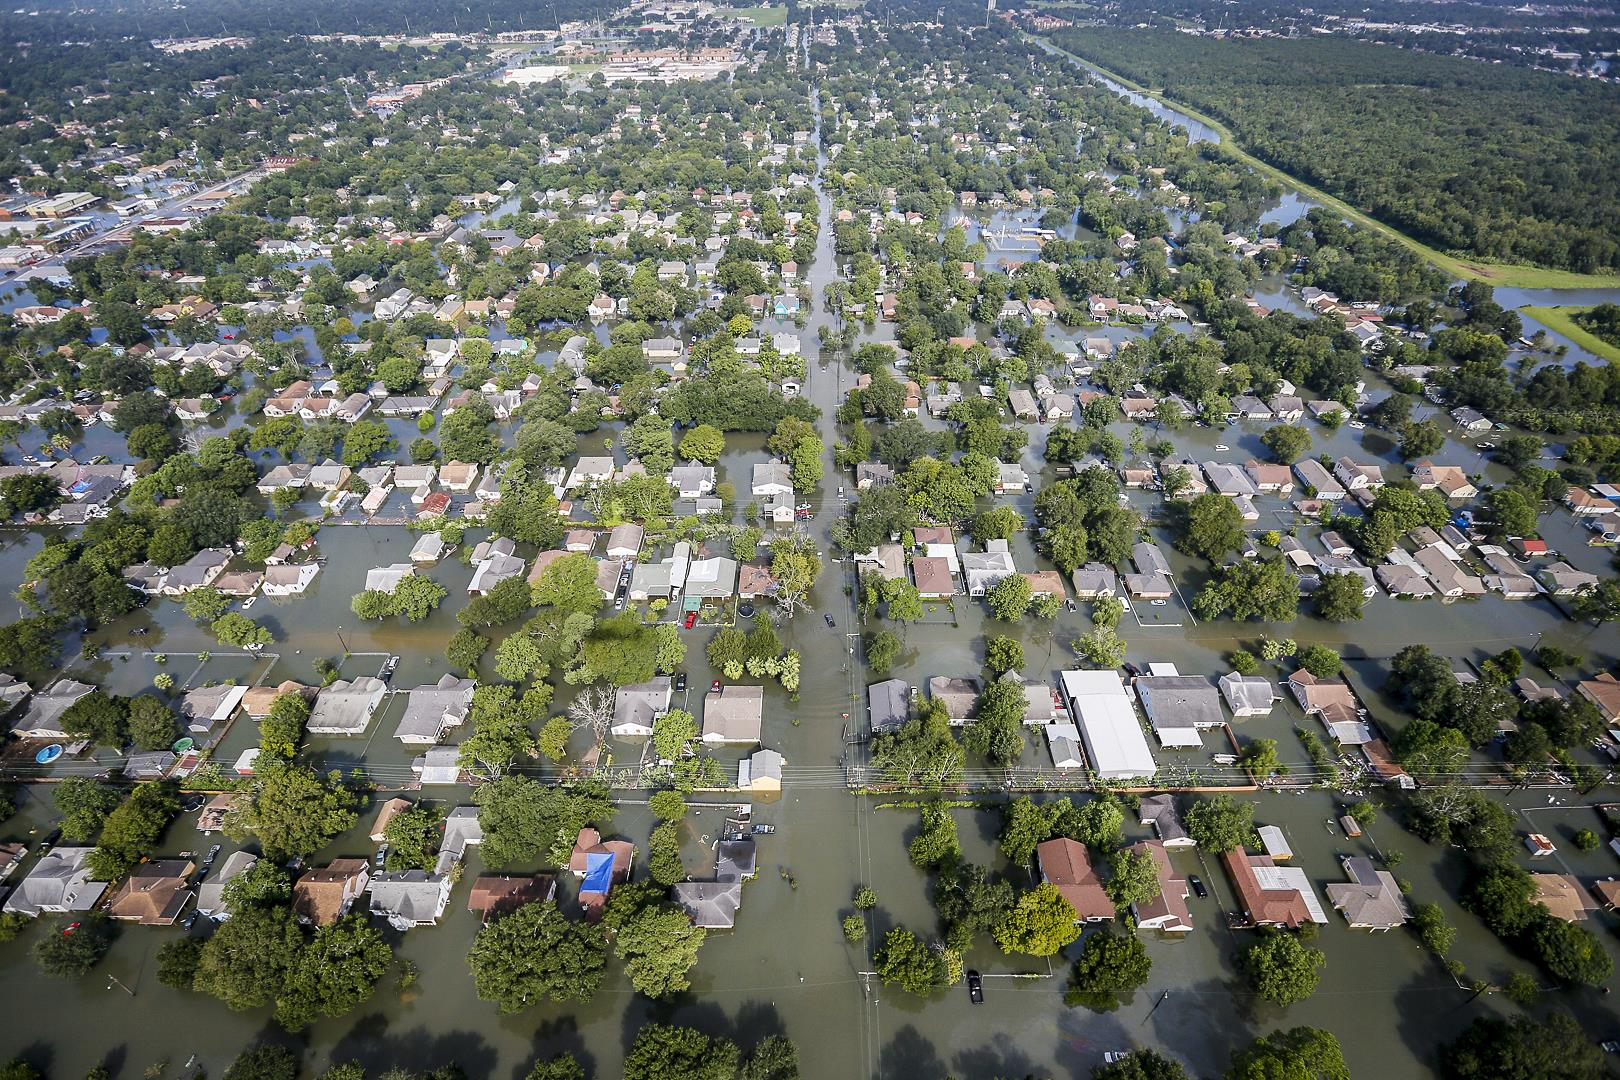 An international team of researchers has found that most of the drowning deaths in the Houston area during Hurricane Harvey occurred outside of high-risk flood zones.